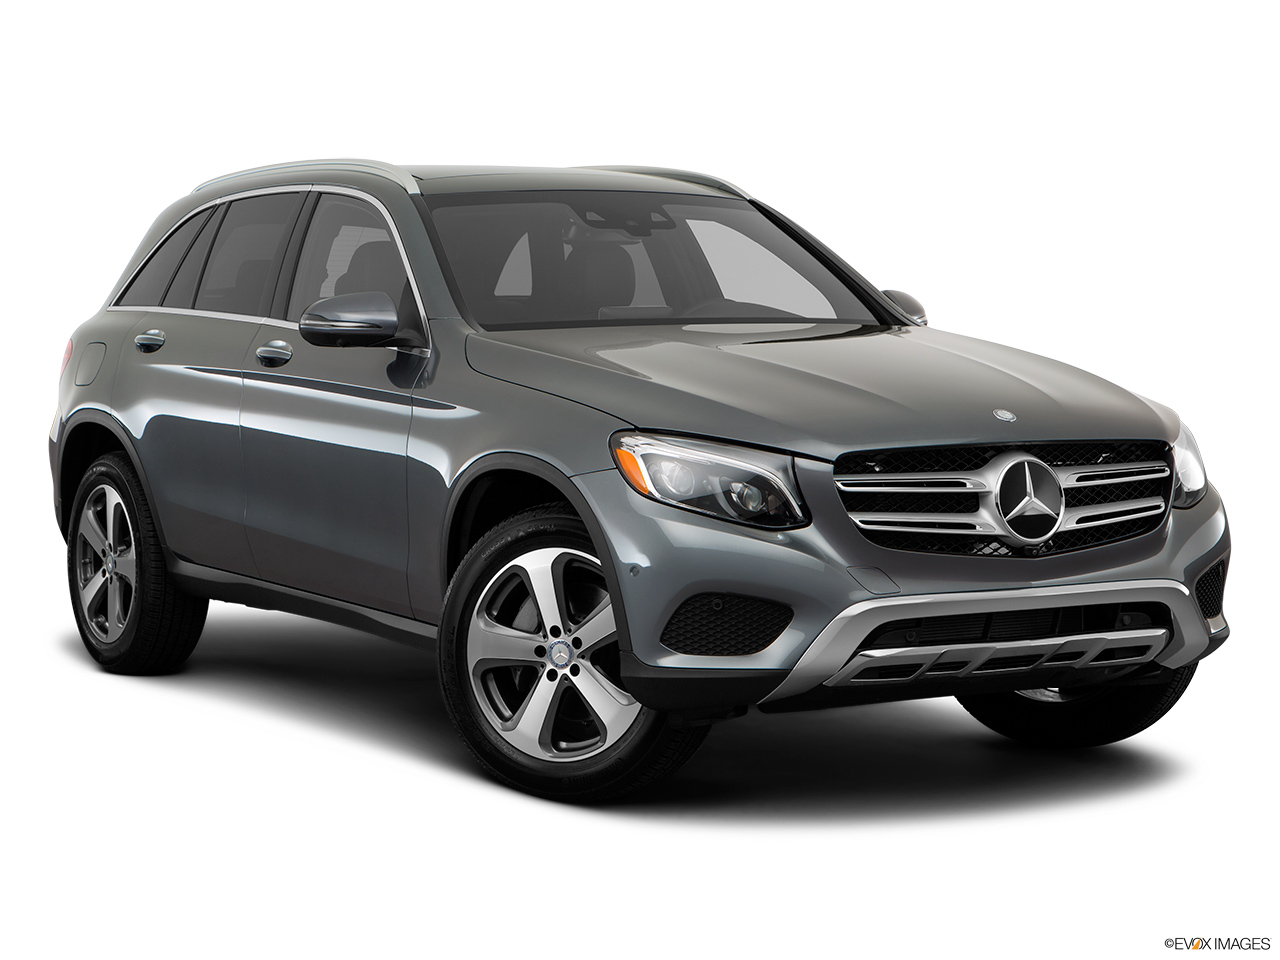 Car pictures list for mercedes benz glc class 2018 glc 300 for Mercedes benz 2018 glc 300